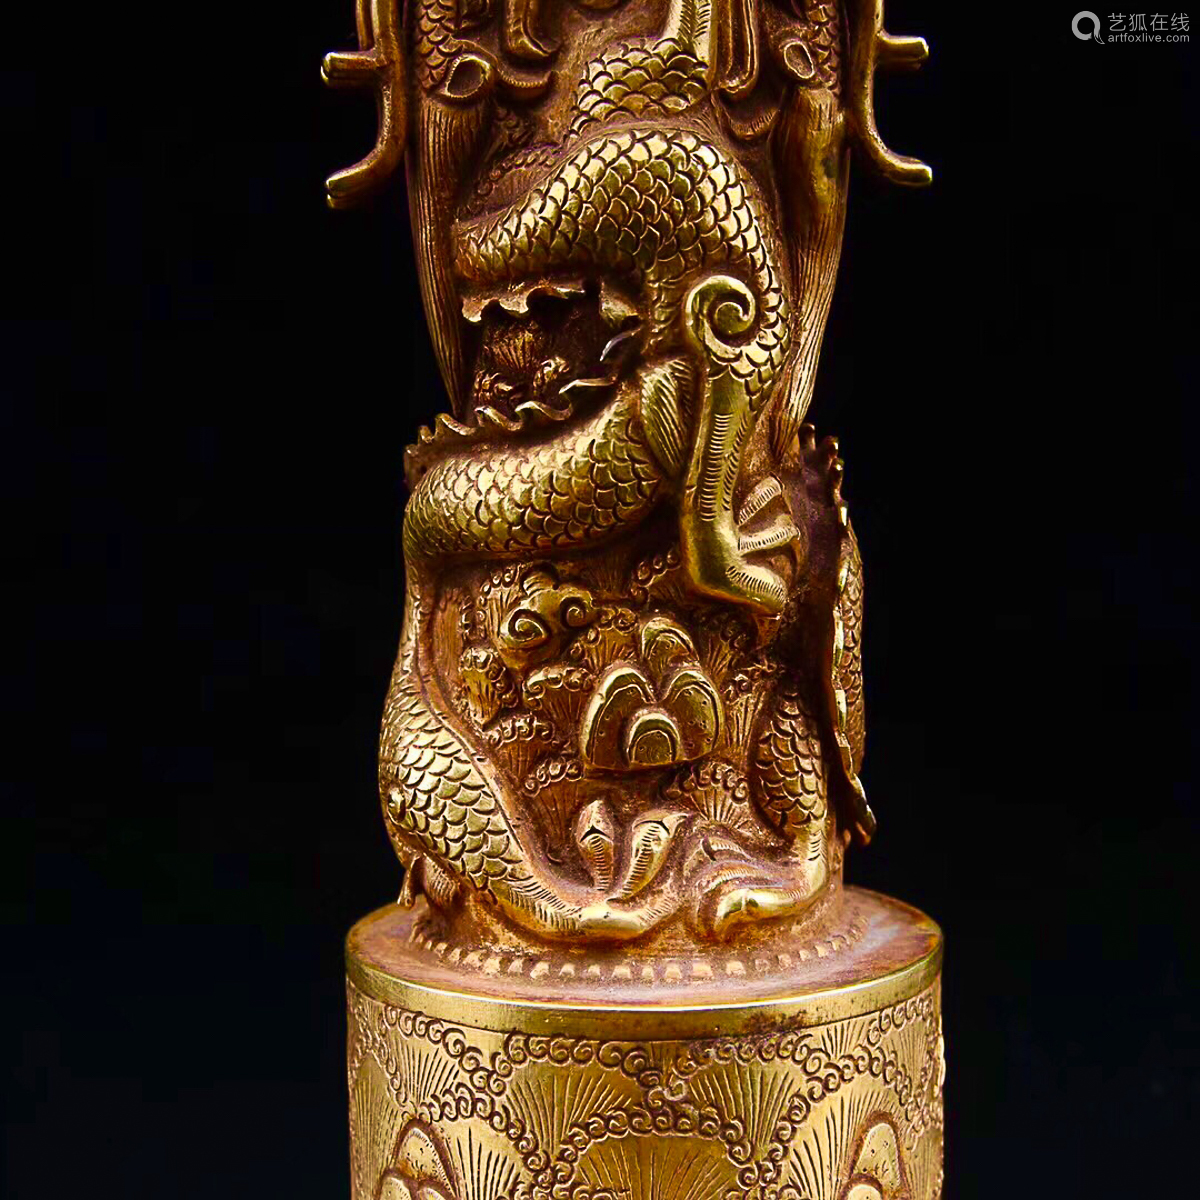 10-11TH CENTURY, A DRAGON&PHOENIX DESIGN STAMP, LIAO DYNASTY